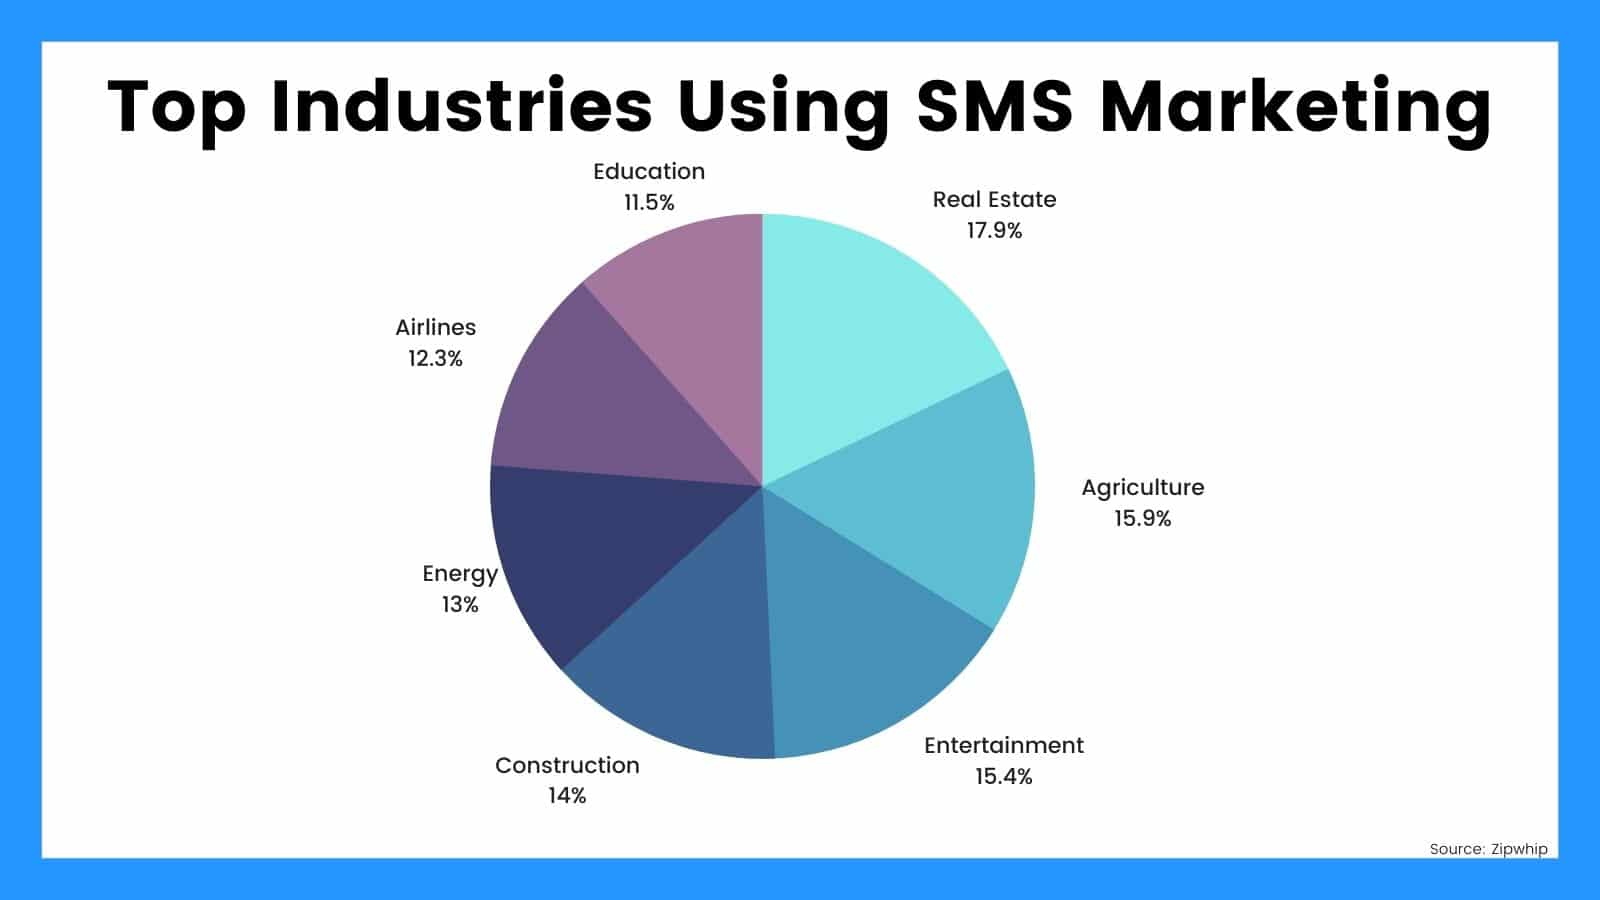 top-industries-using-sms-marketing-percentages